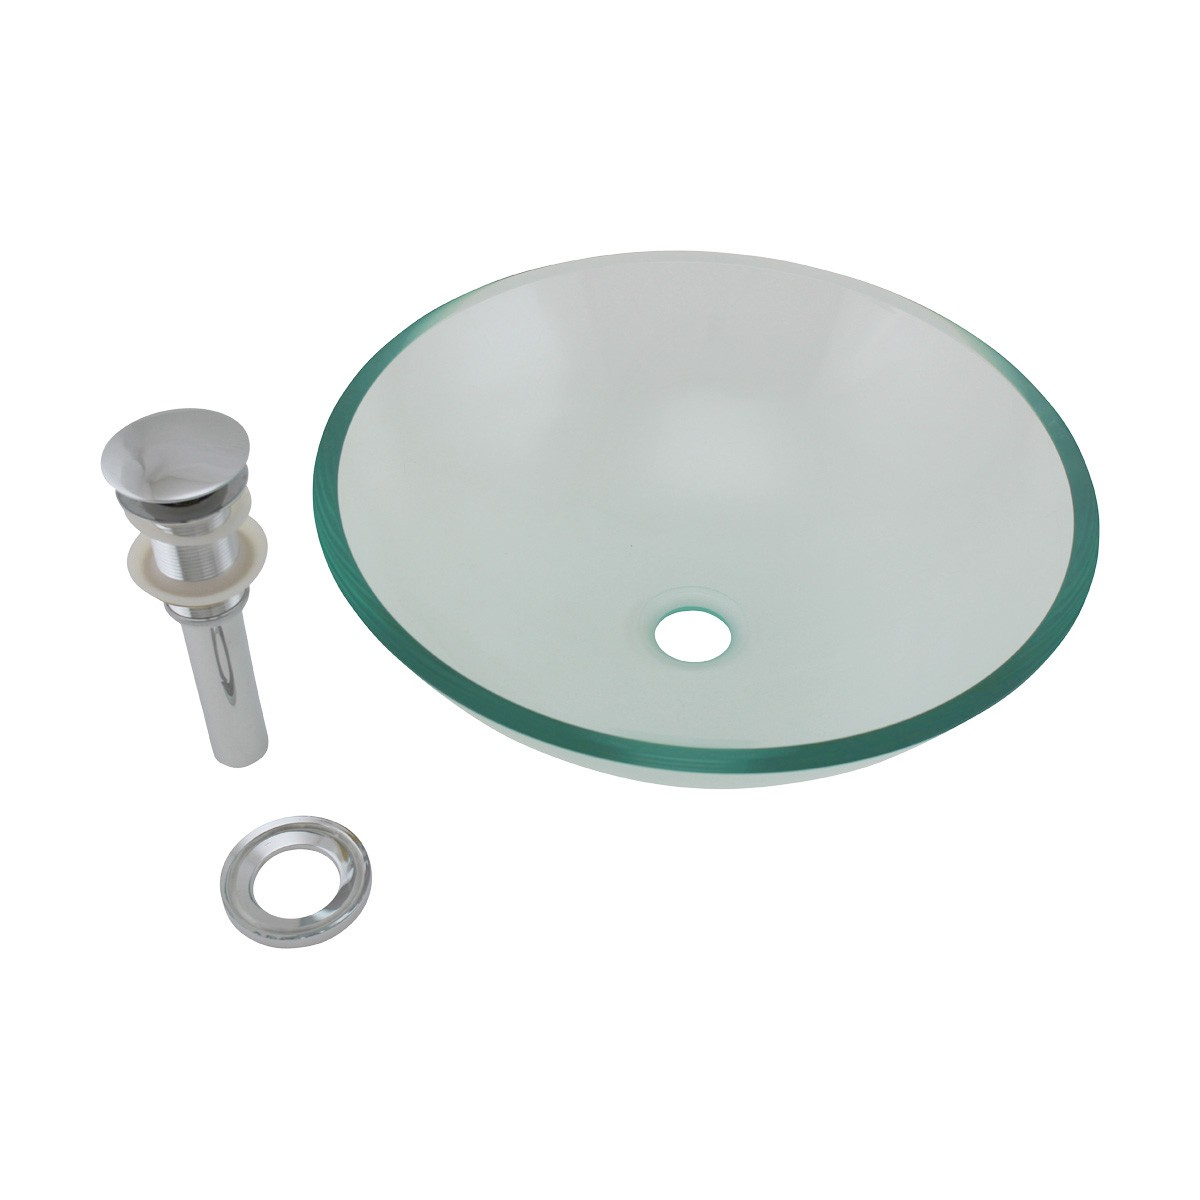 Clear Tempered Glass Vessel Sink Round Bowl Stain Resistant Chrome PopUp Drain bathroom vessel sinks Countertop vessel sink Glass Bathroom Sink